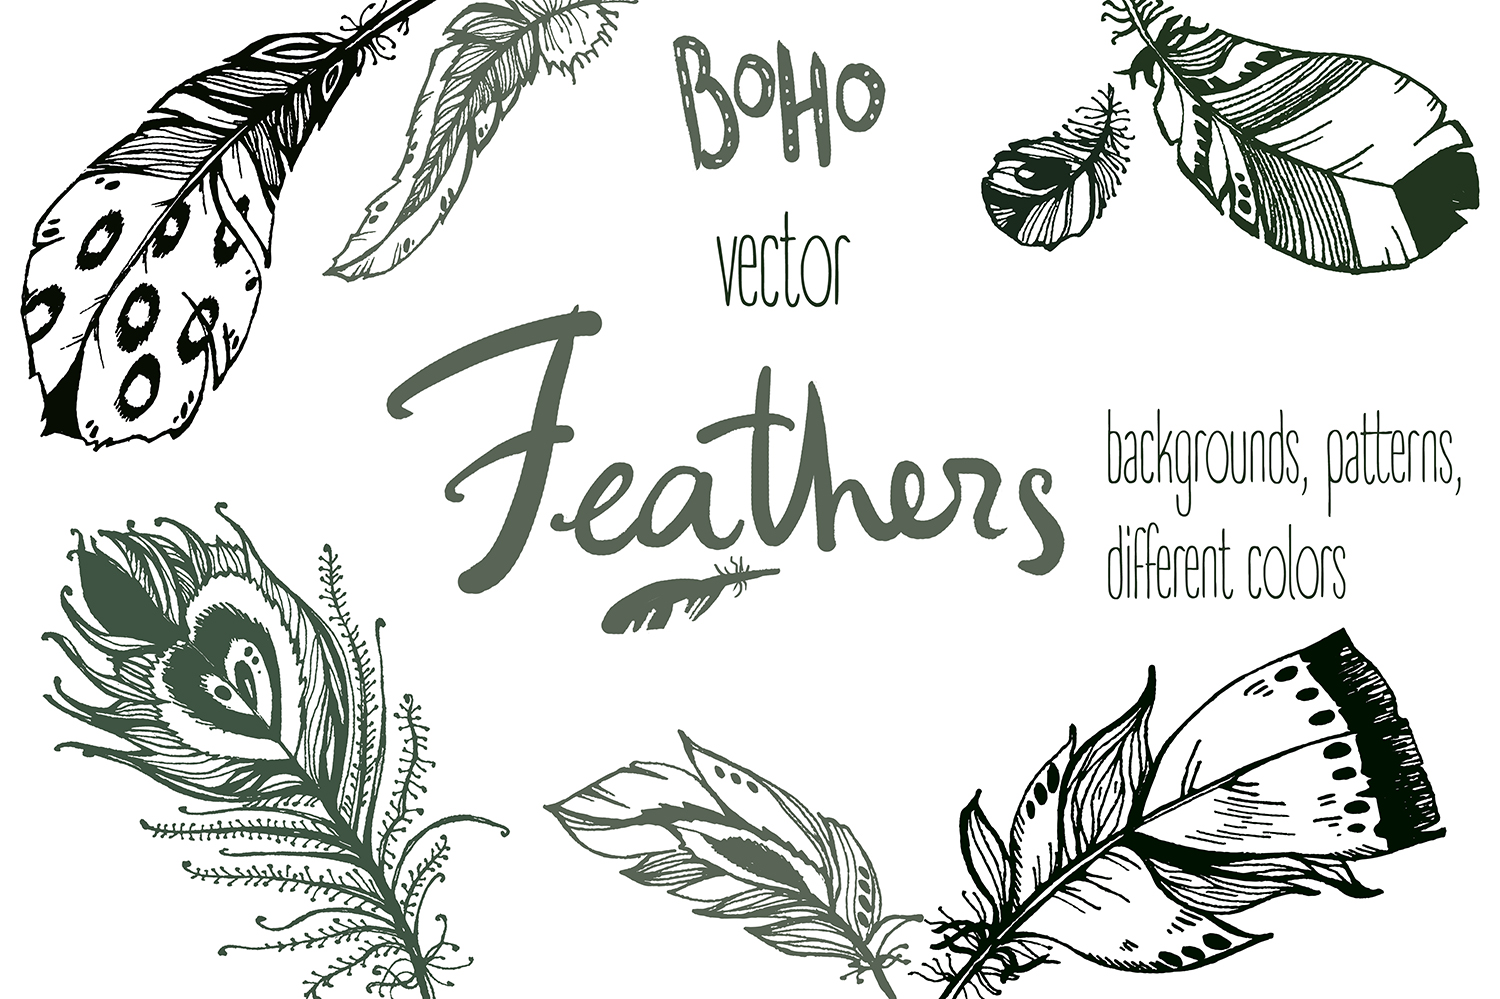 Vector boho feathers. Designs. example image 1